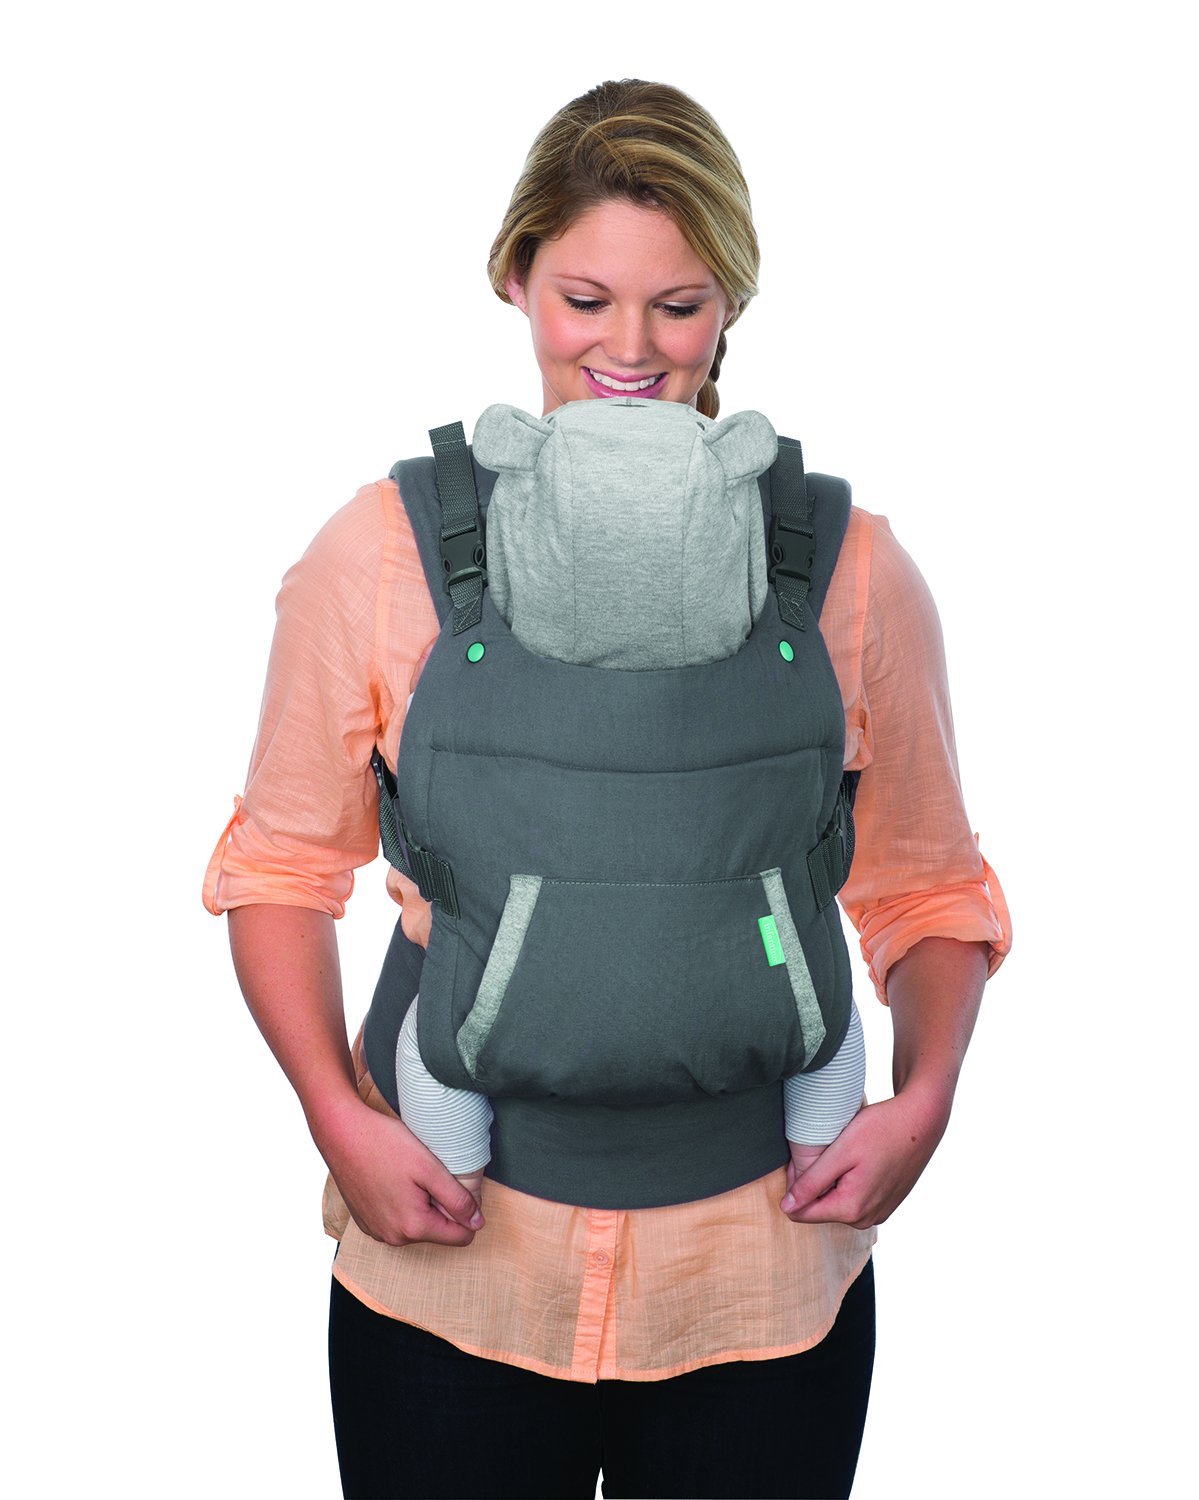 Infantino Cuddle Up Ergonomic Hoodie Carrier, Grey Infantino Fully safety tested Carries children from 12-40lbs (5.4 - 18.1 kgs) 5